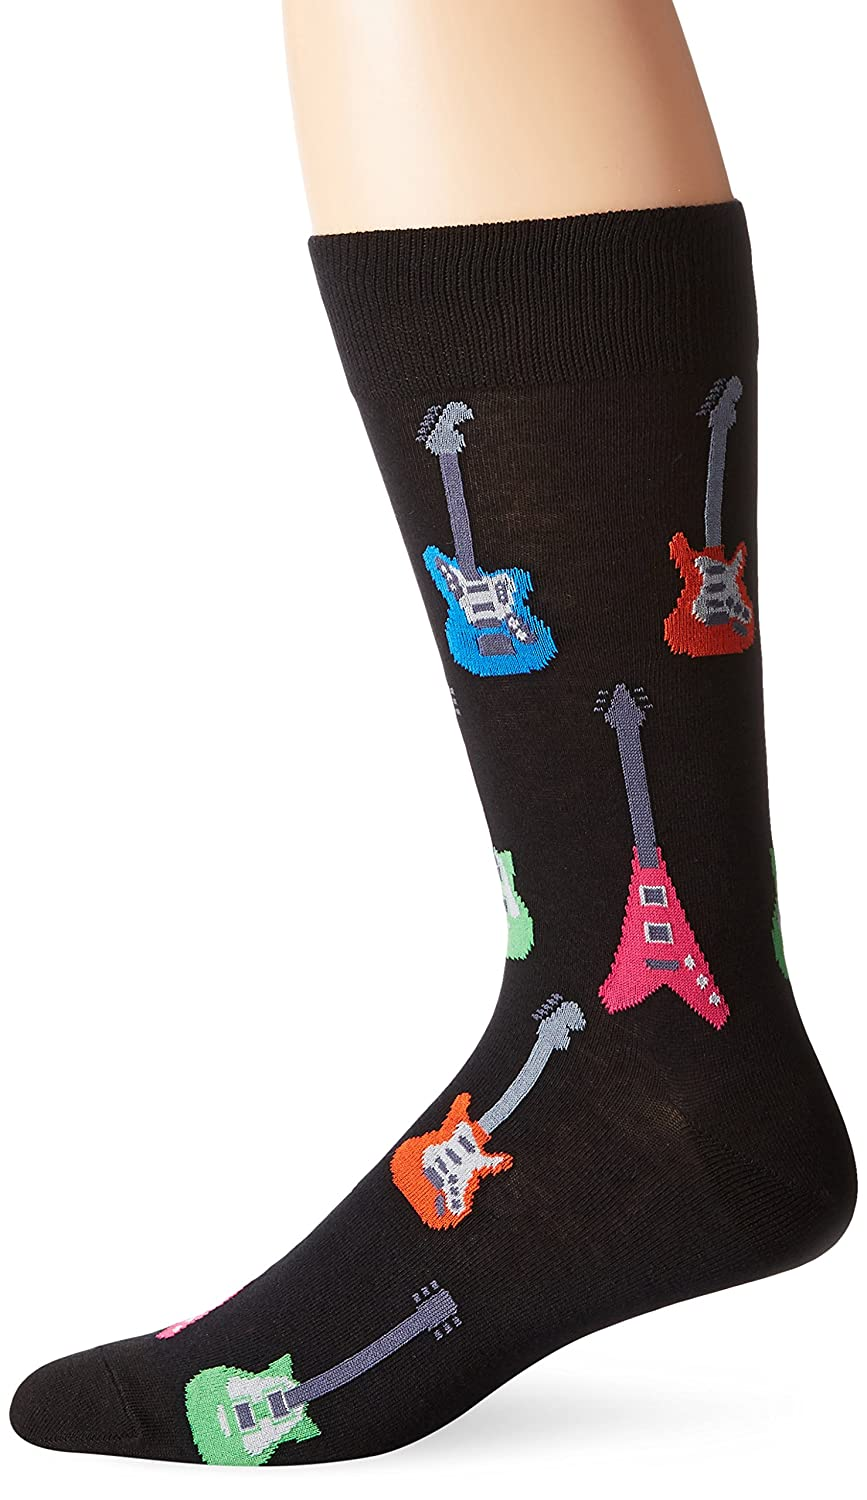 Hot Sox Men's Novelty Classic Man Crew Socks Black Large HM100097